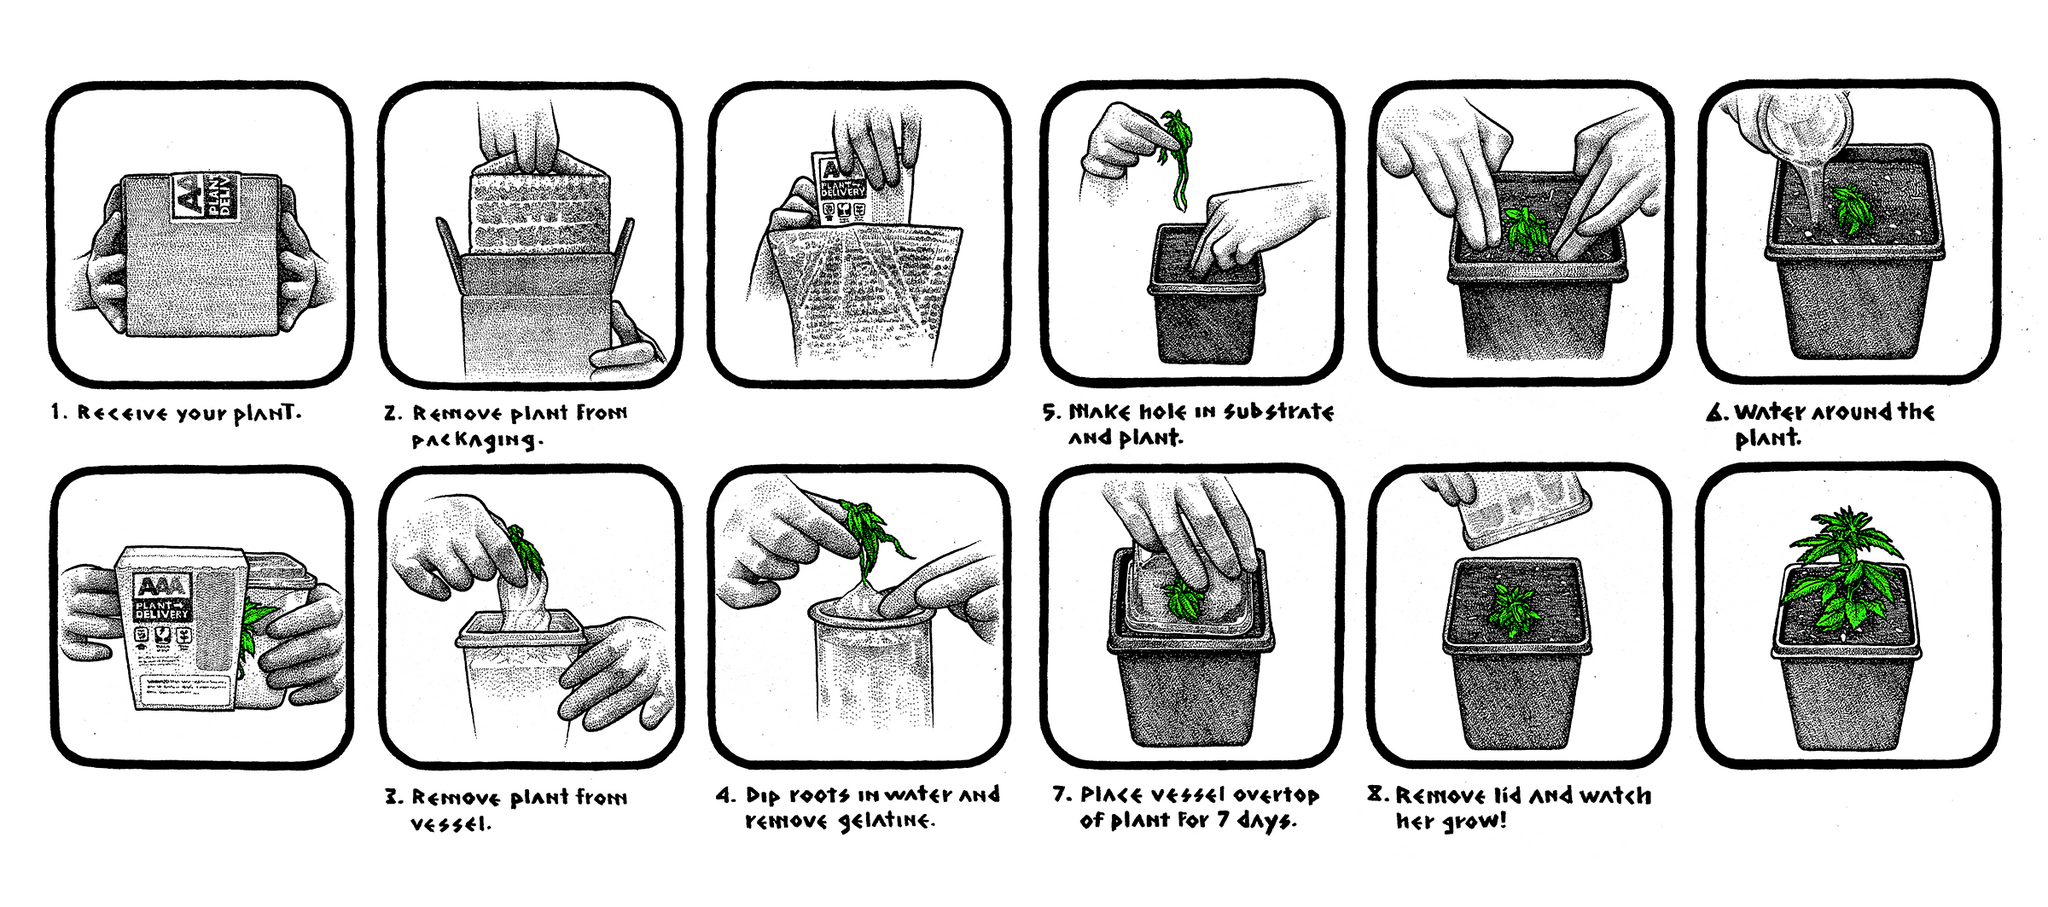 AAA PLANT DELIVERY - STEP BY STEP INSTRUCTIONS